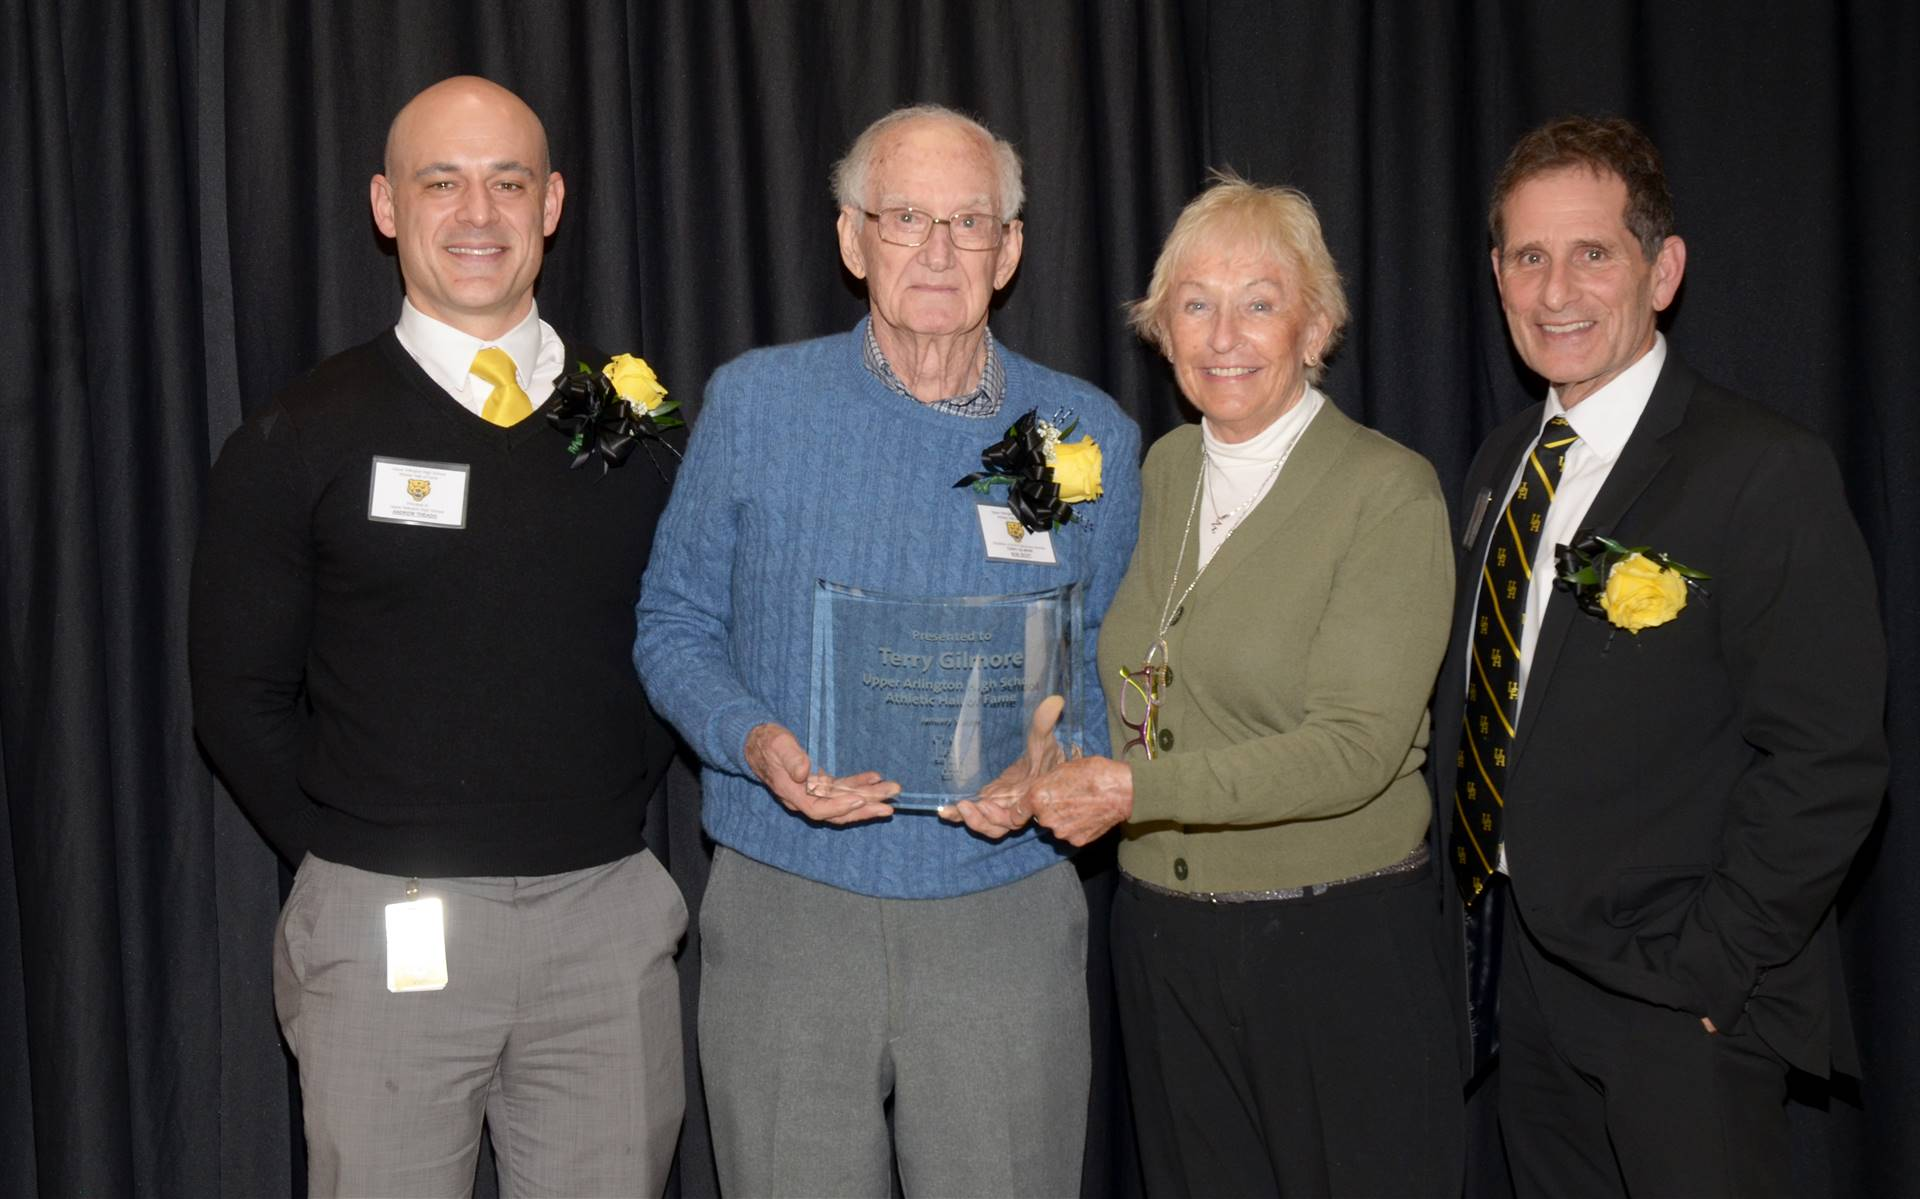 The family of inductee Terry Gilmore with Principal Andrew Theado and Athletic Director Tony Pusater